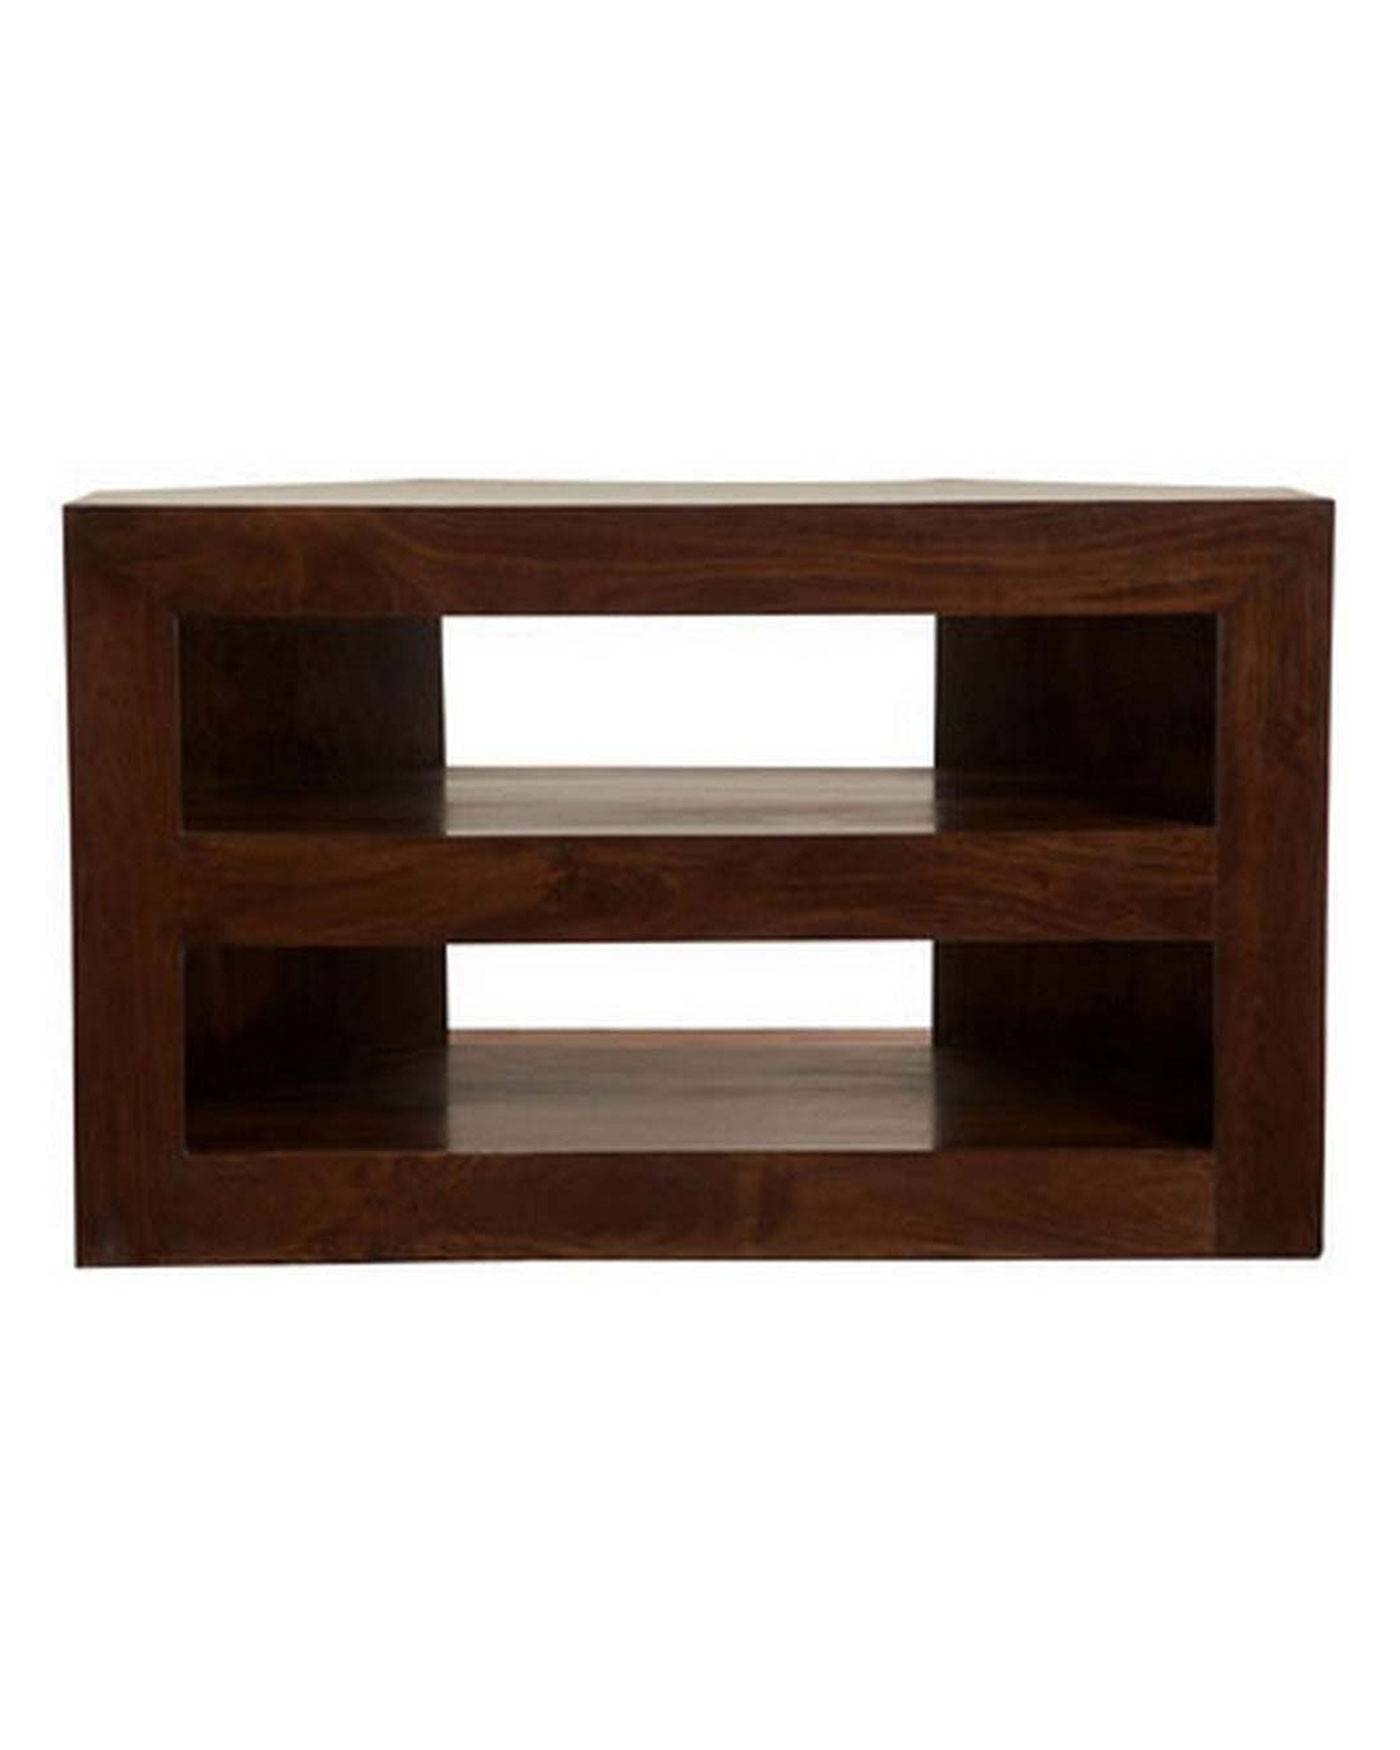 Dakota Corner Tv Unit Dark Shade - Homescapes within Dark Wood Tv Stands (Image 6 of 15)